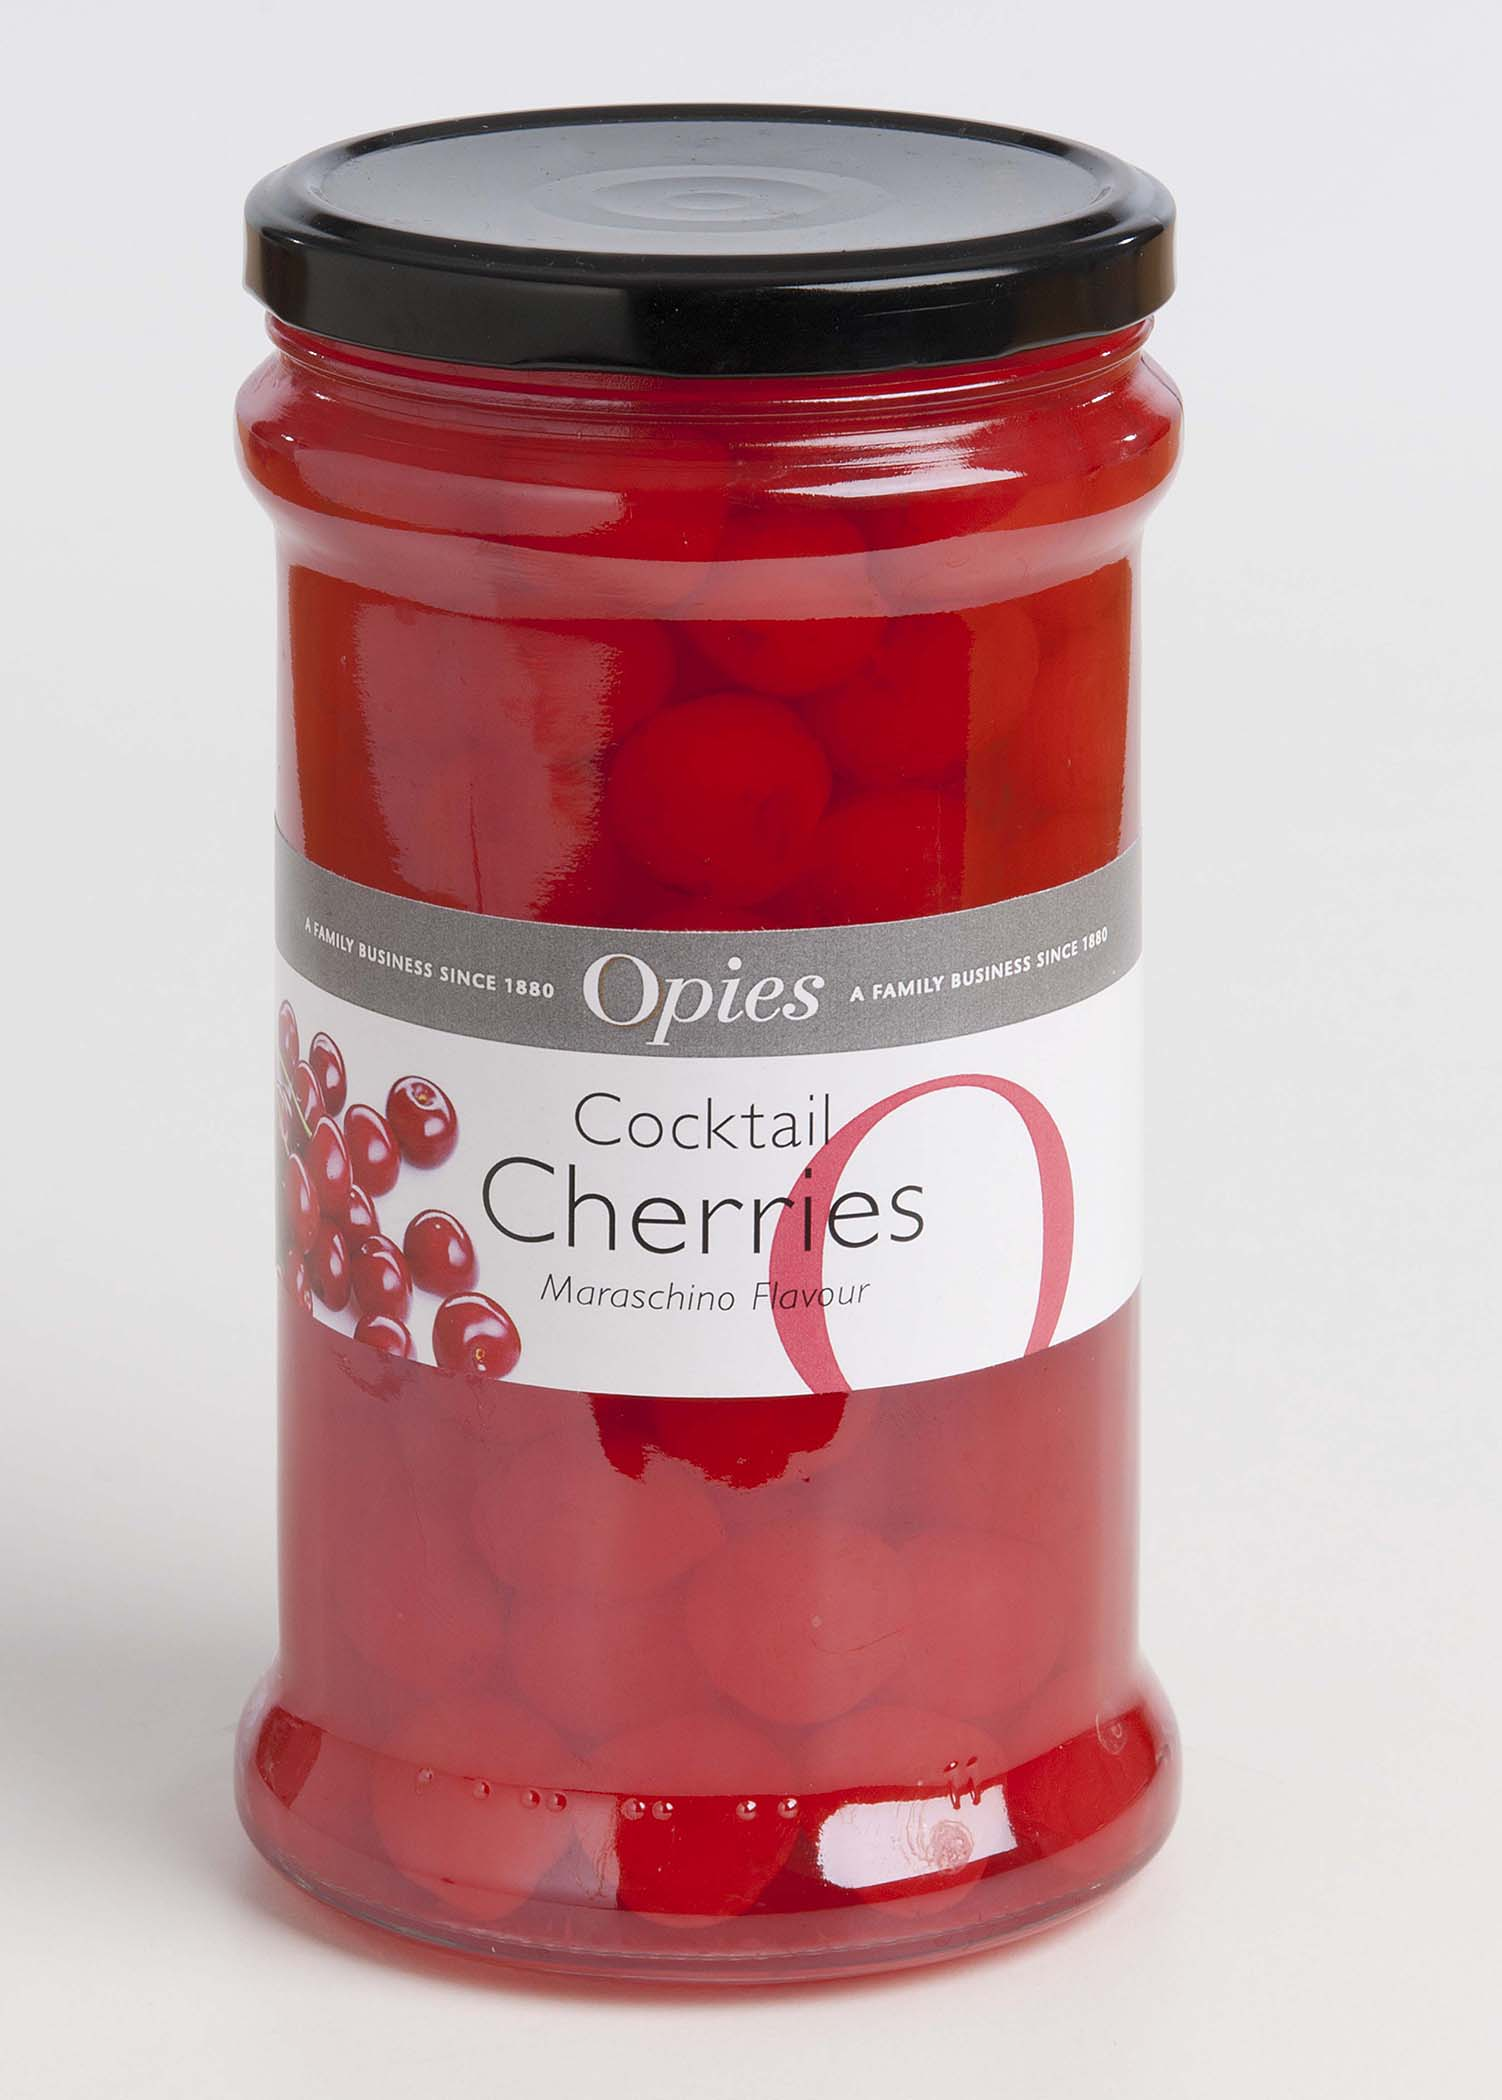 Opies Cocktail Cherries 950g